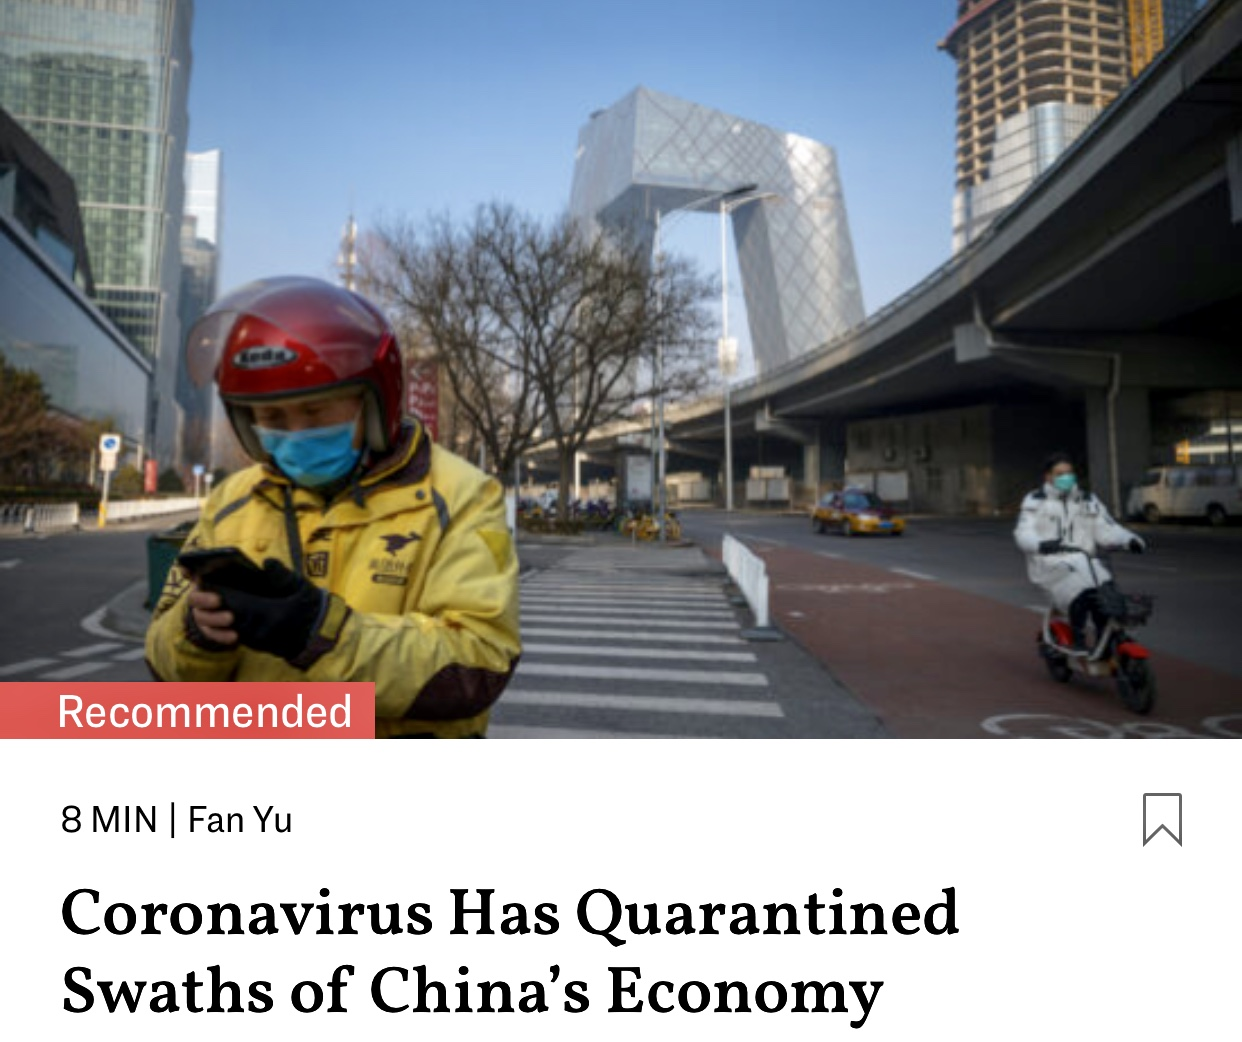 Coronavirus Has Quarantined Swaths of China's Economy